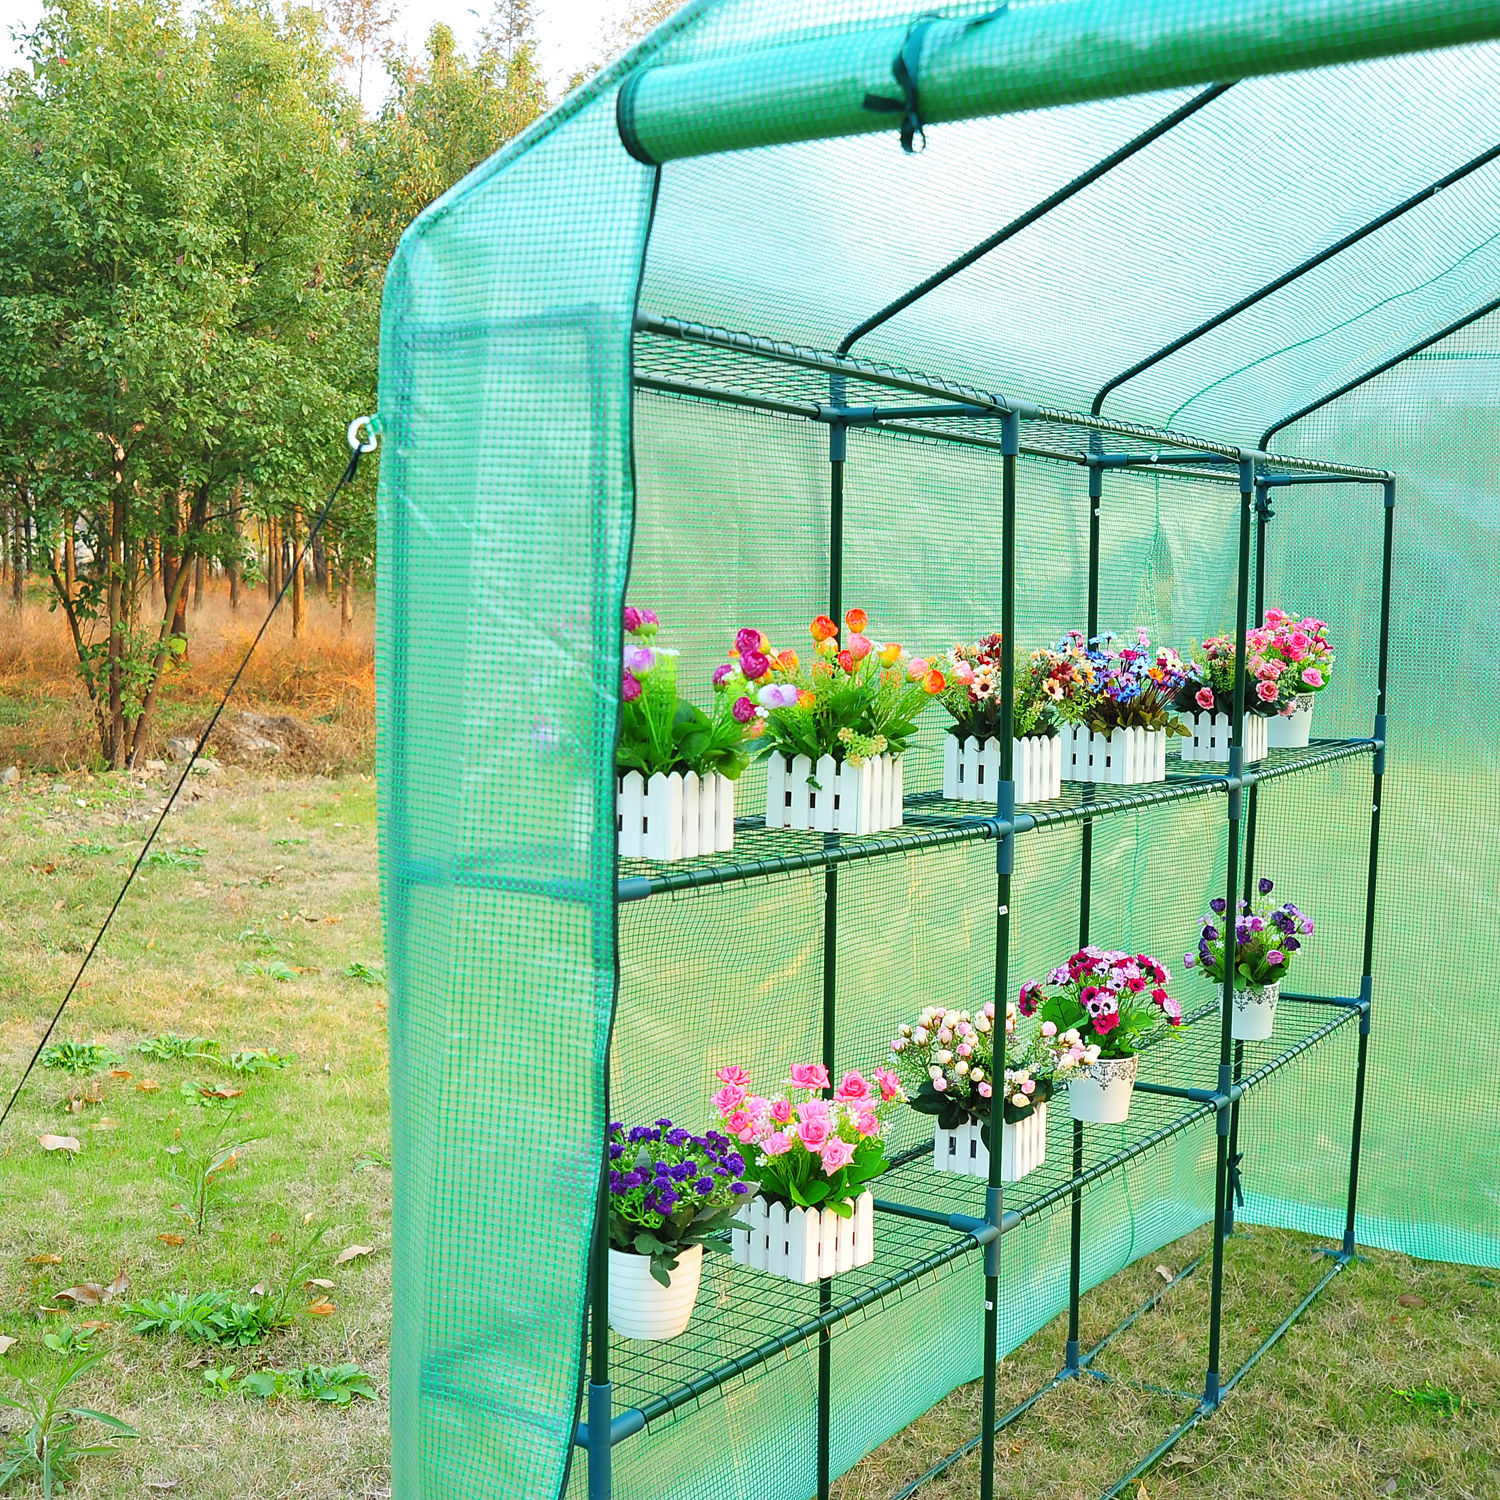 in pictures lighting greenhouse gardening garden to vegetable start a cool